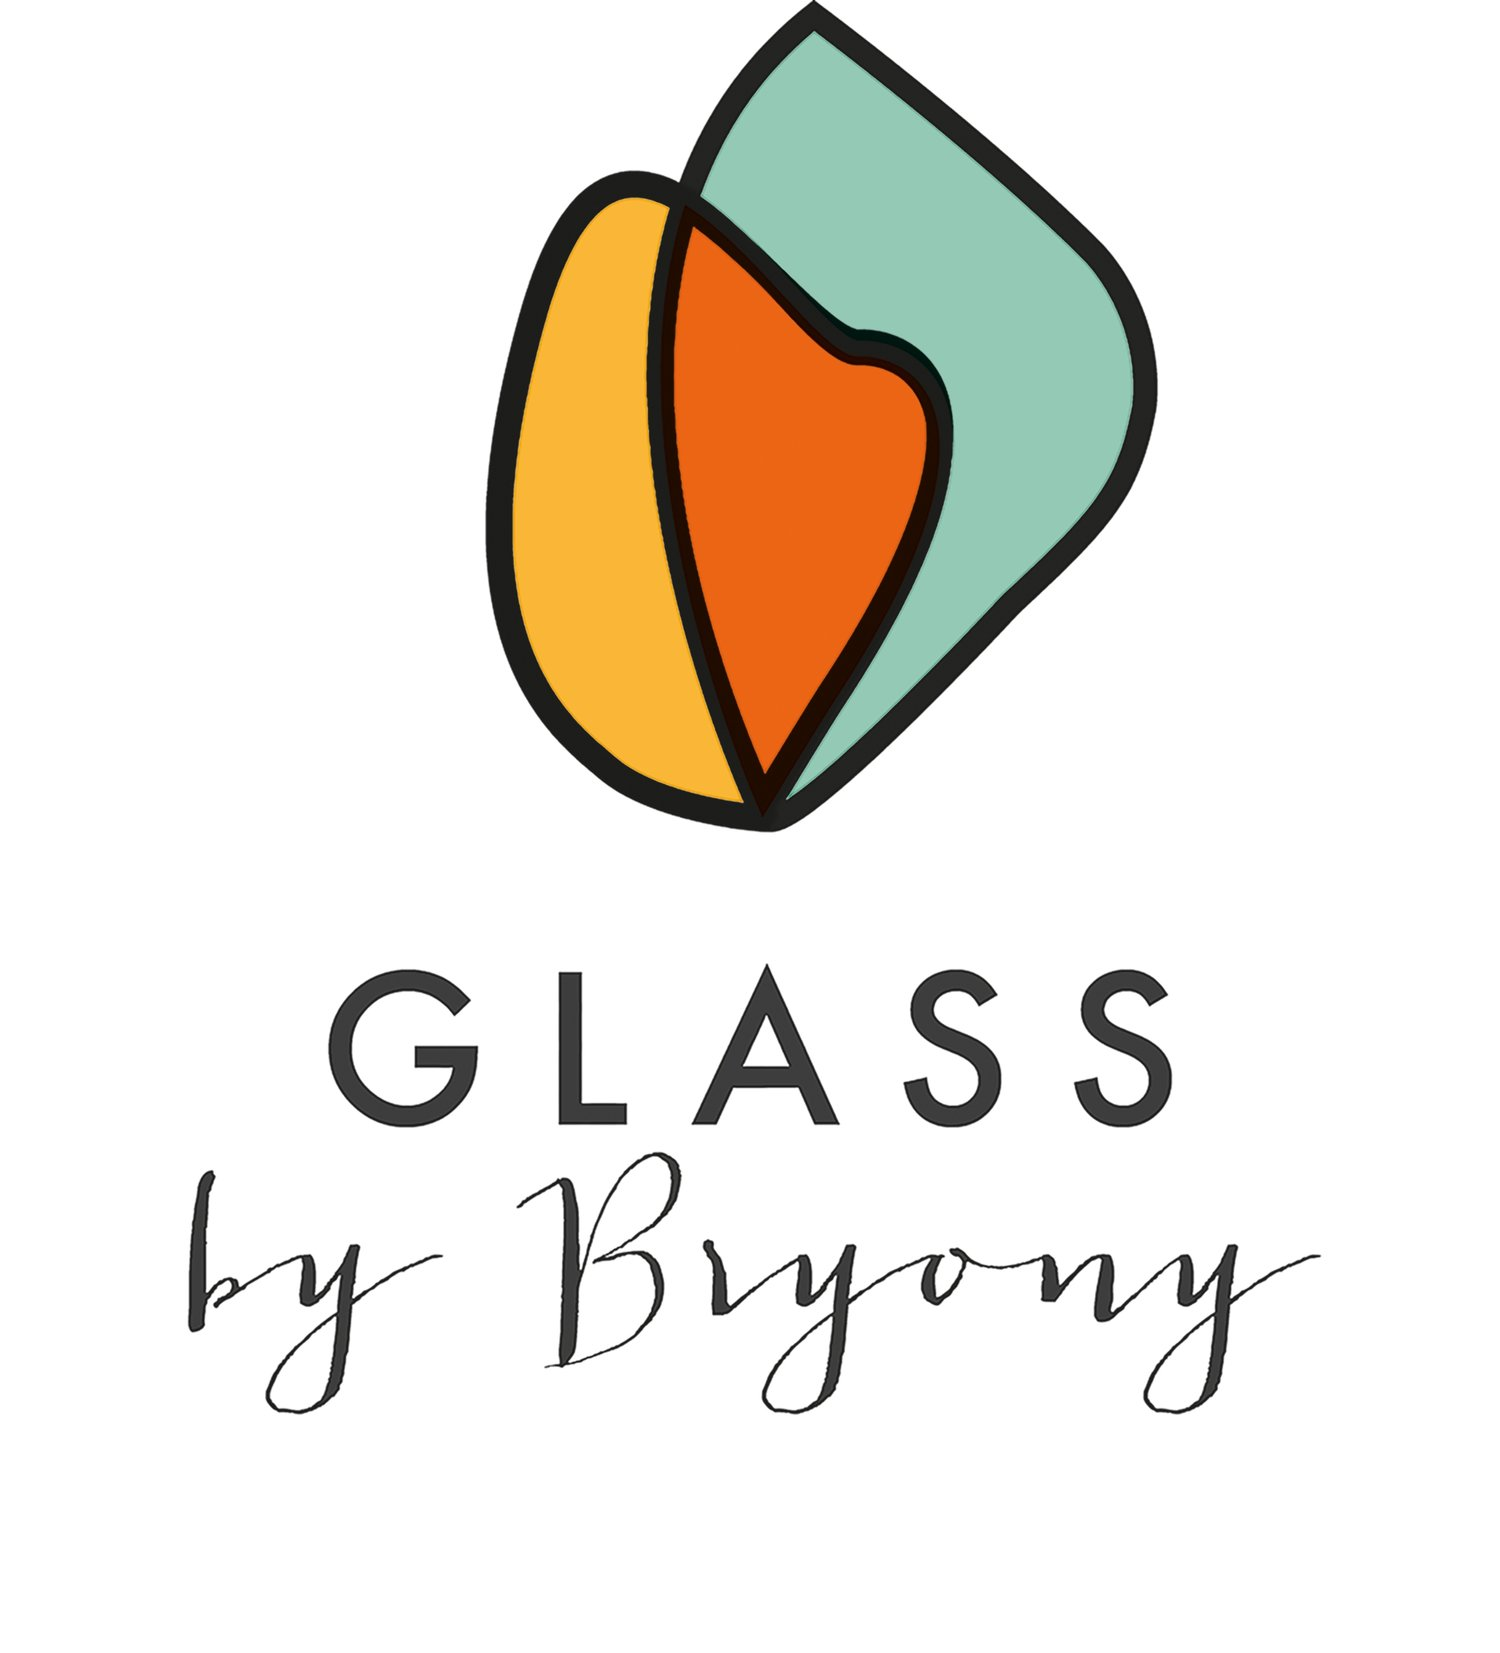 Glass by Bryony Raffield